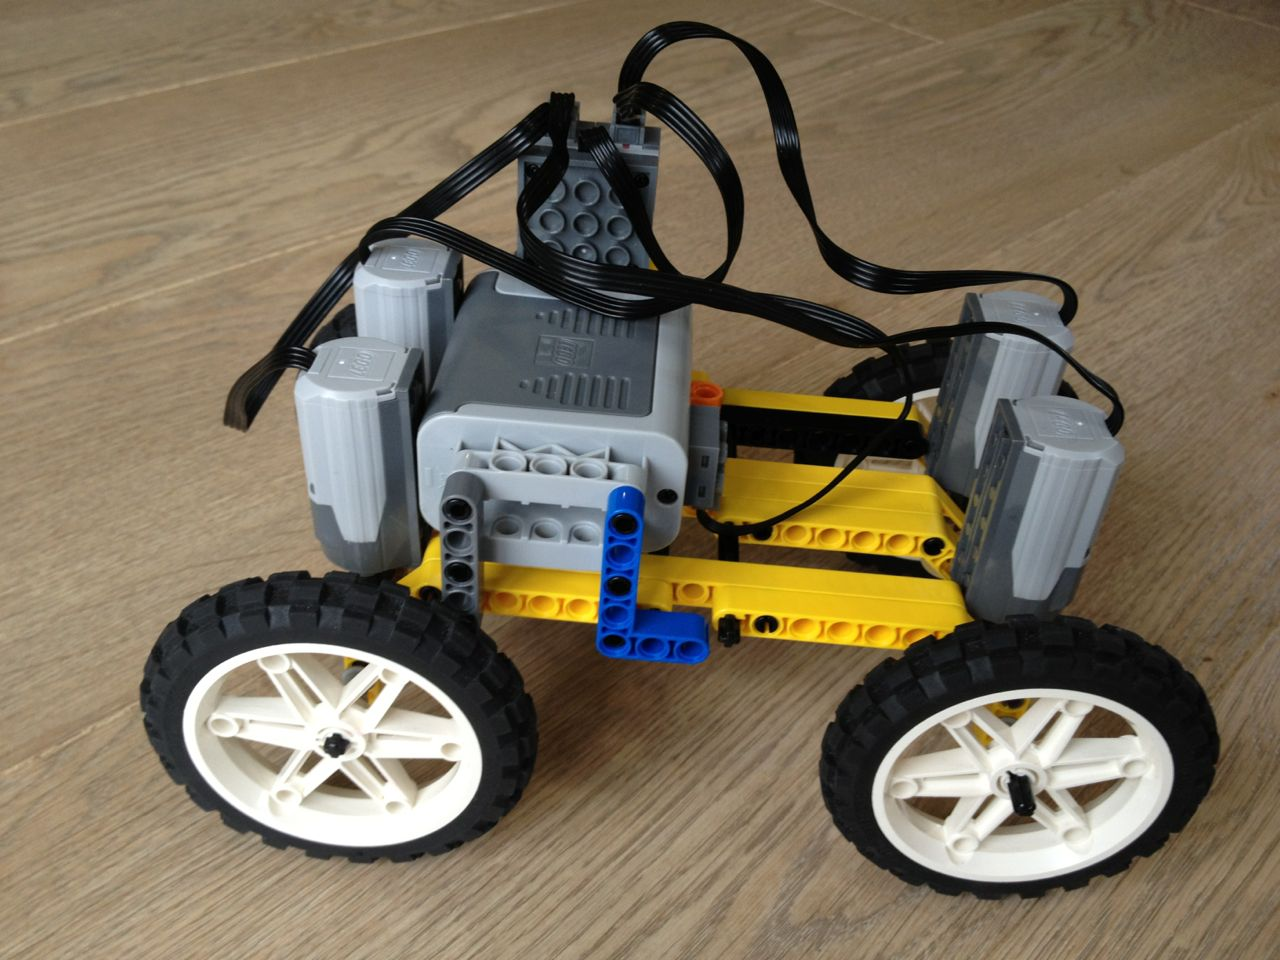 Building An Off Road Car With Lego Technic Christoph